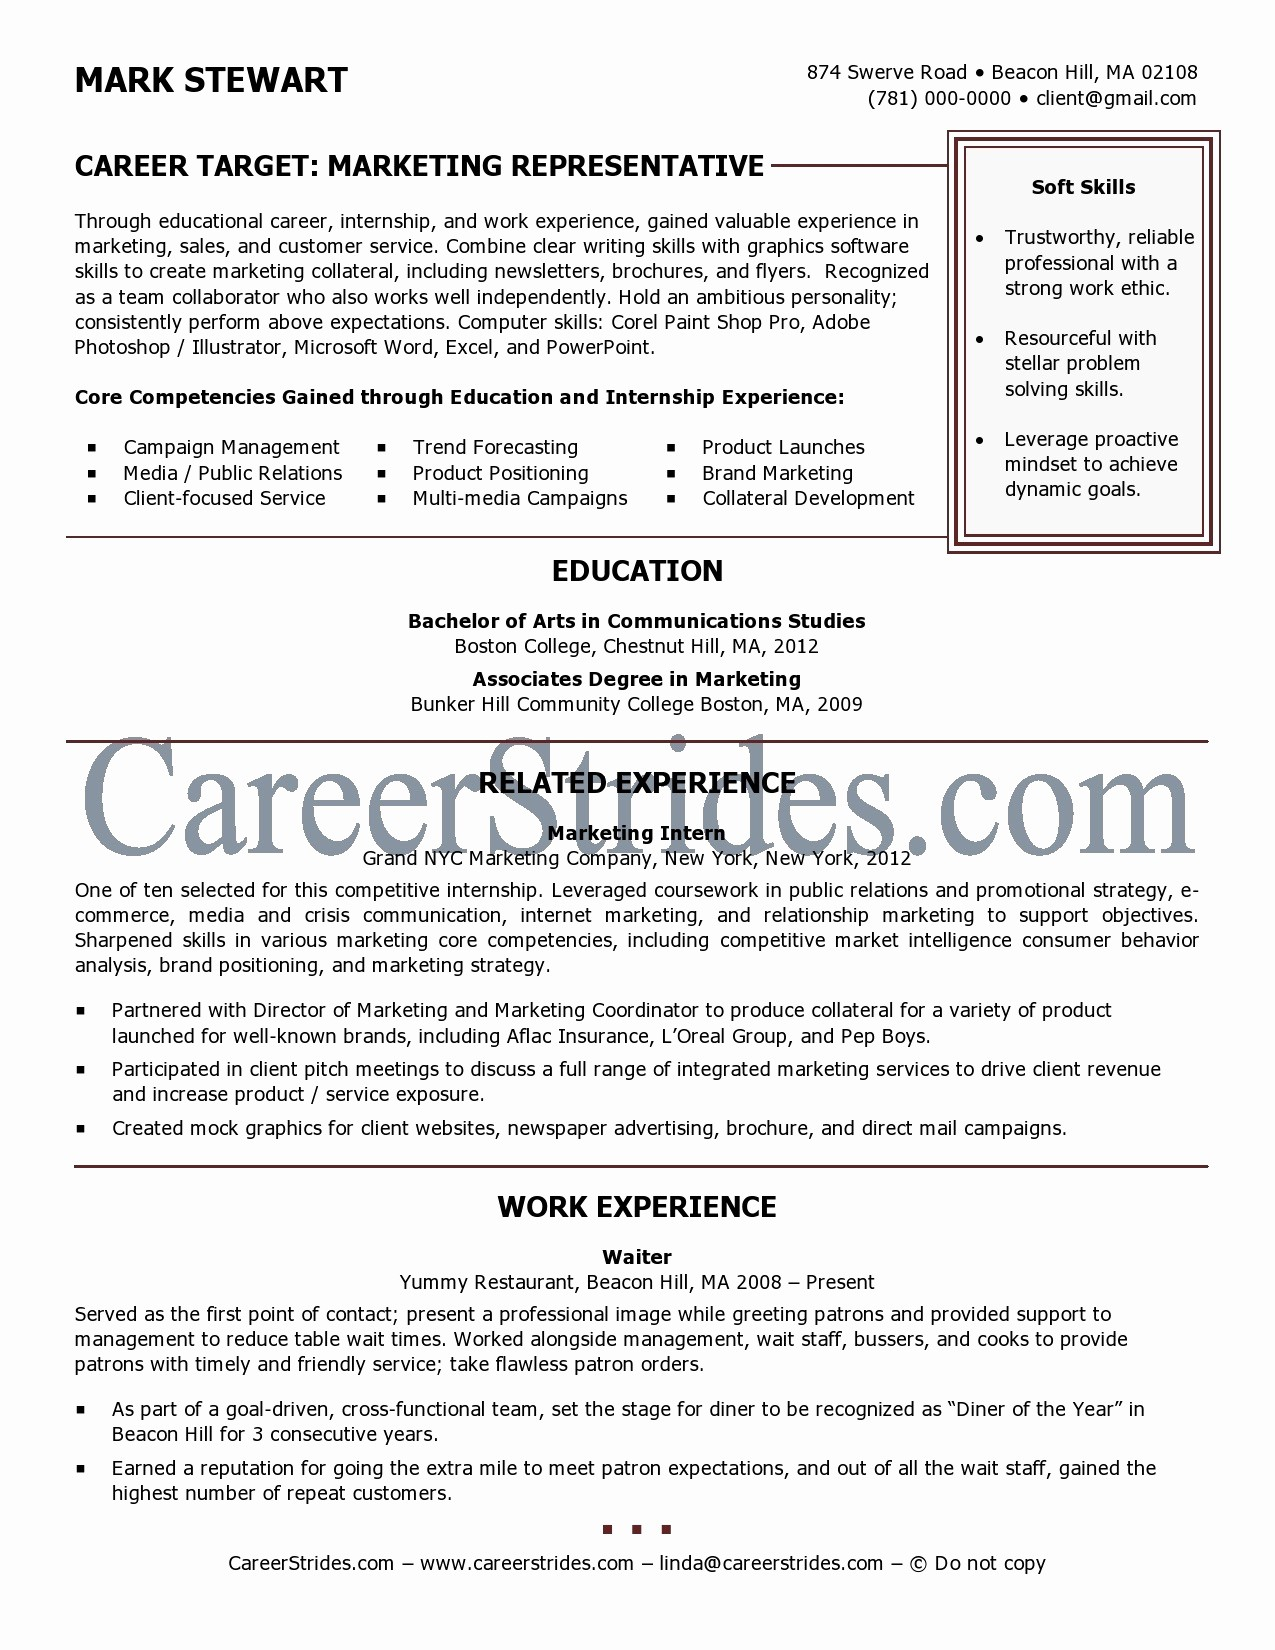 Recent College Graduate Resume Template Elegant Review Resume Samples In A Wide Range Of Careers